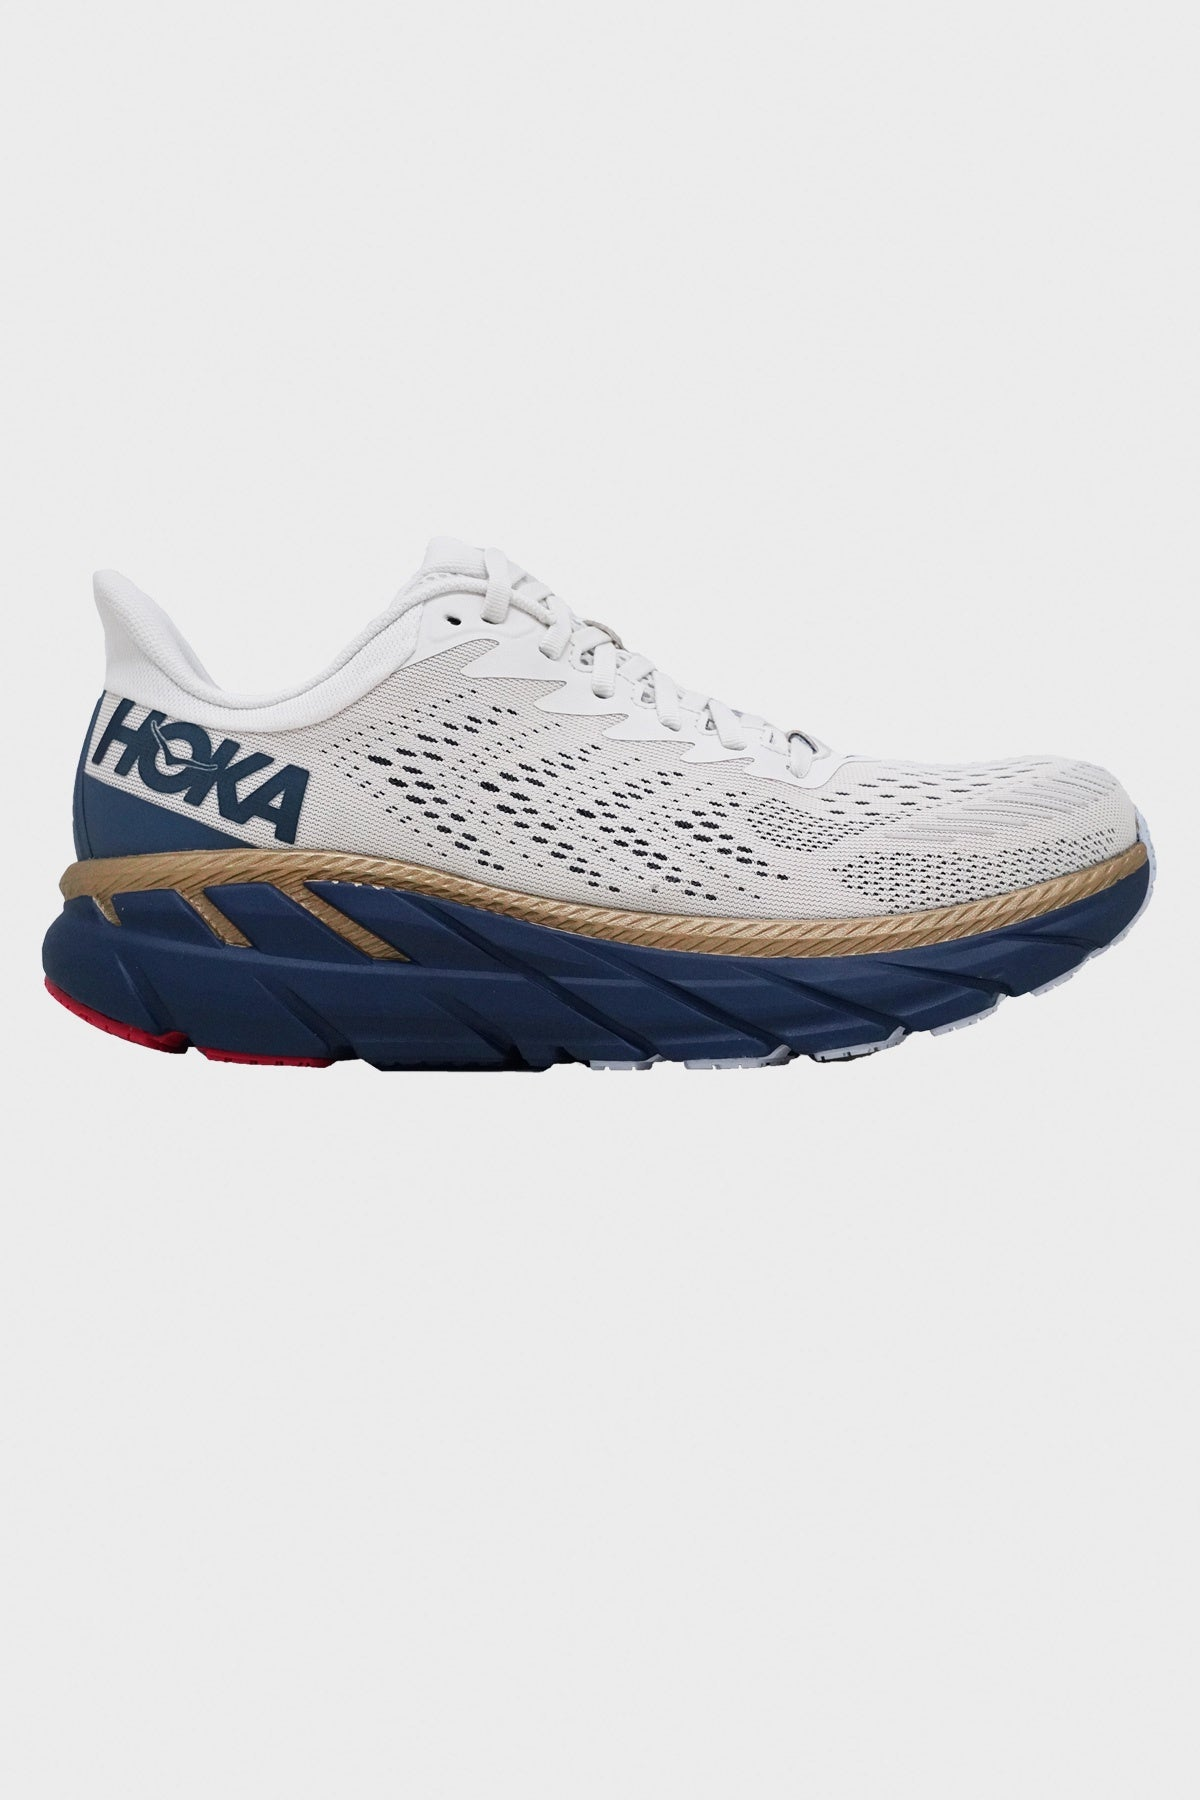 HOKA ONE ONE - Clifton 7 - Tofu/Vintage Blue - Canoe Club